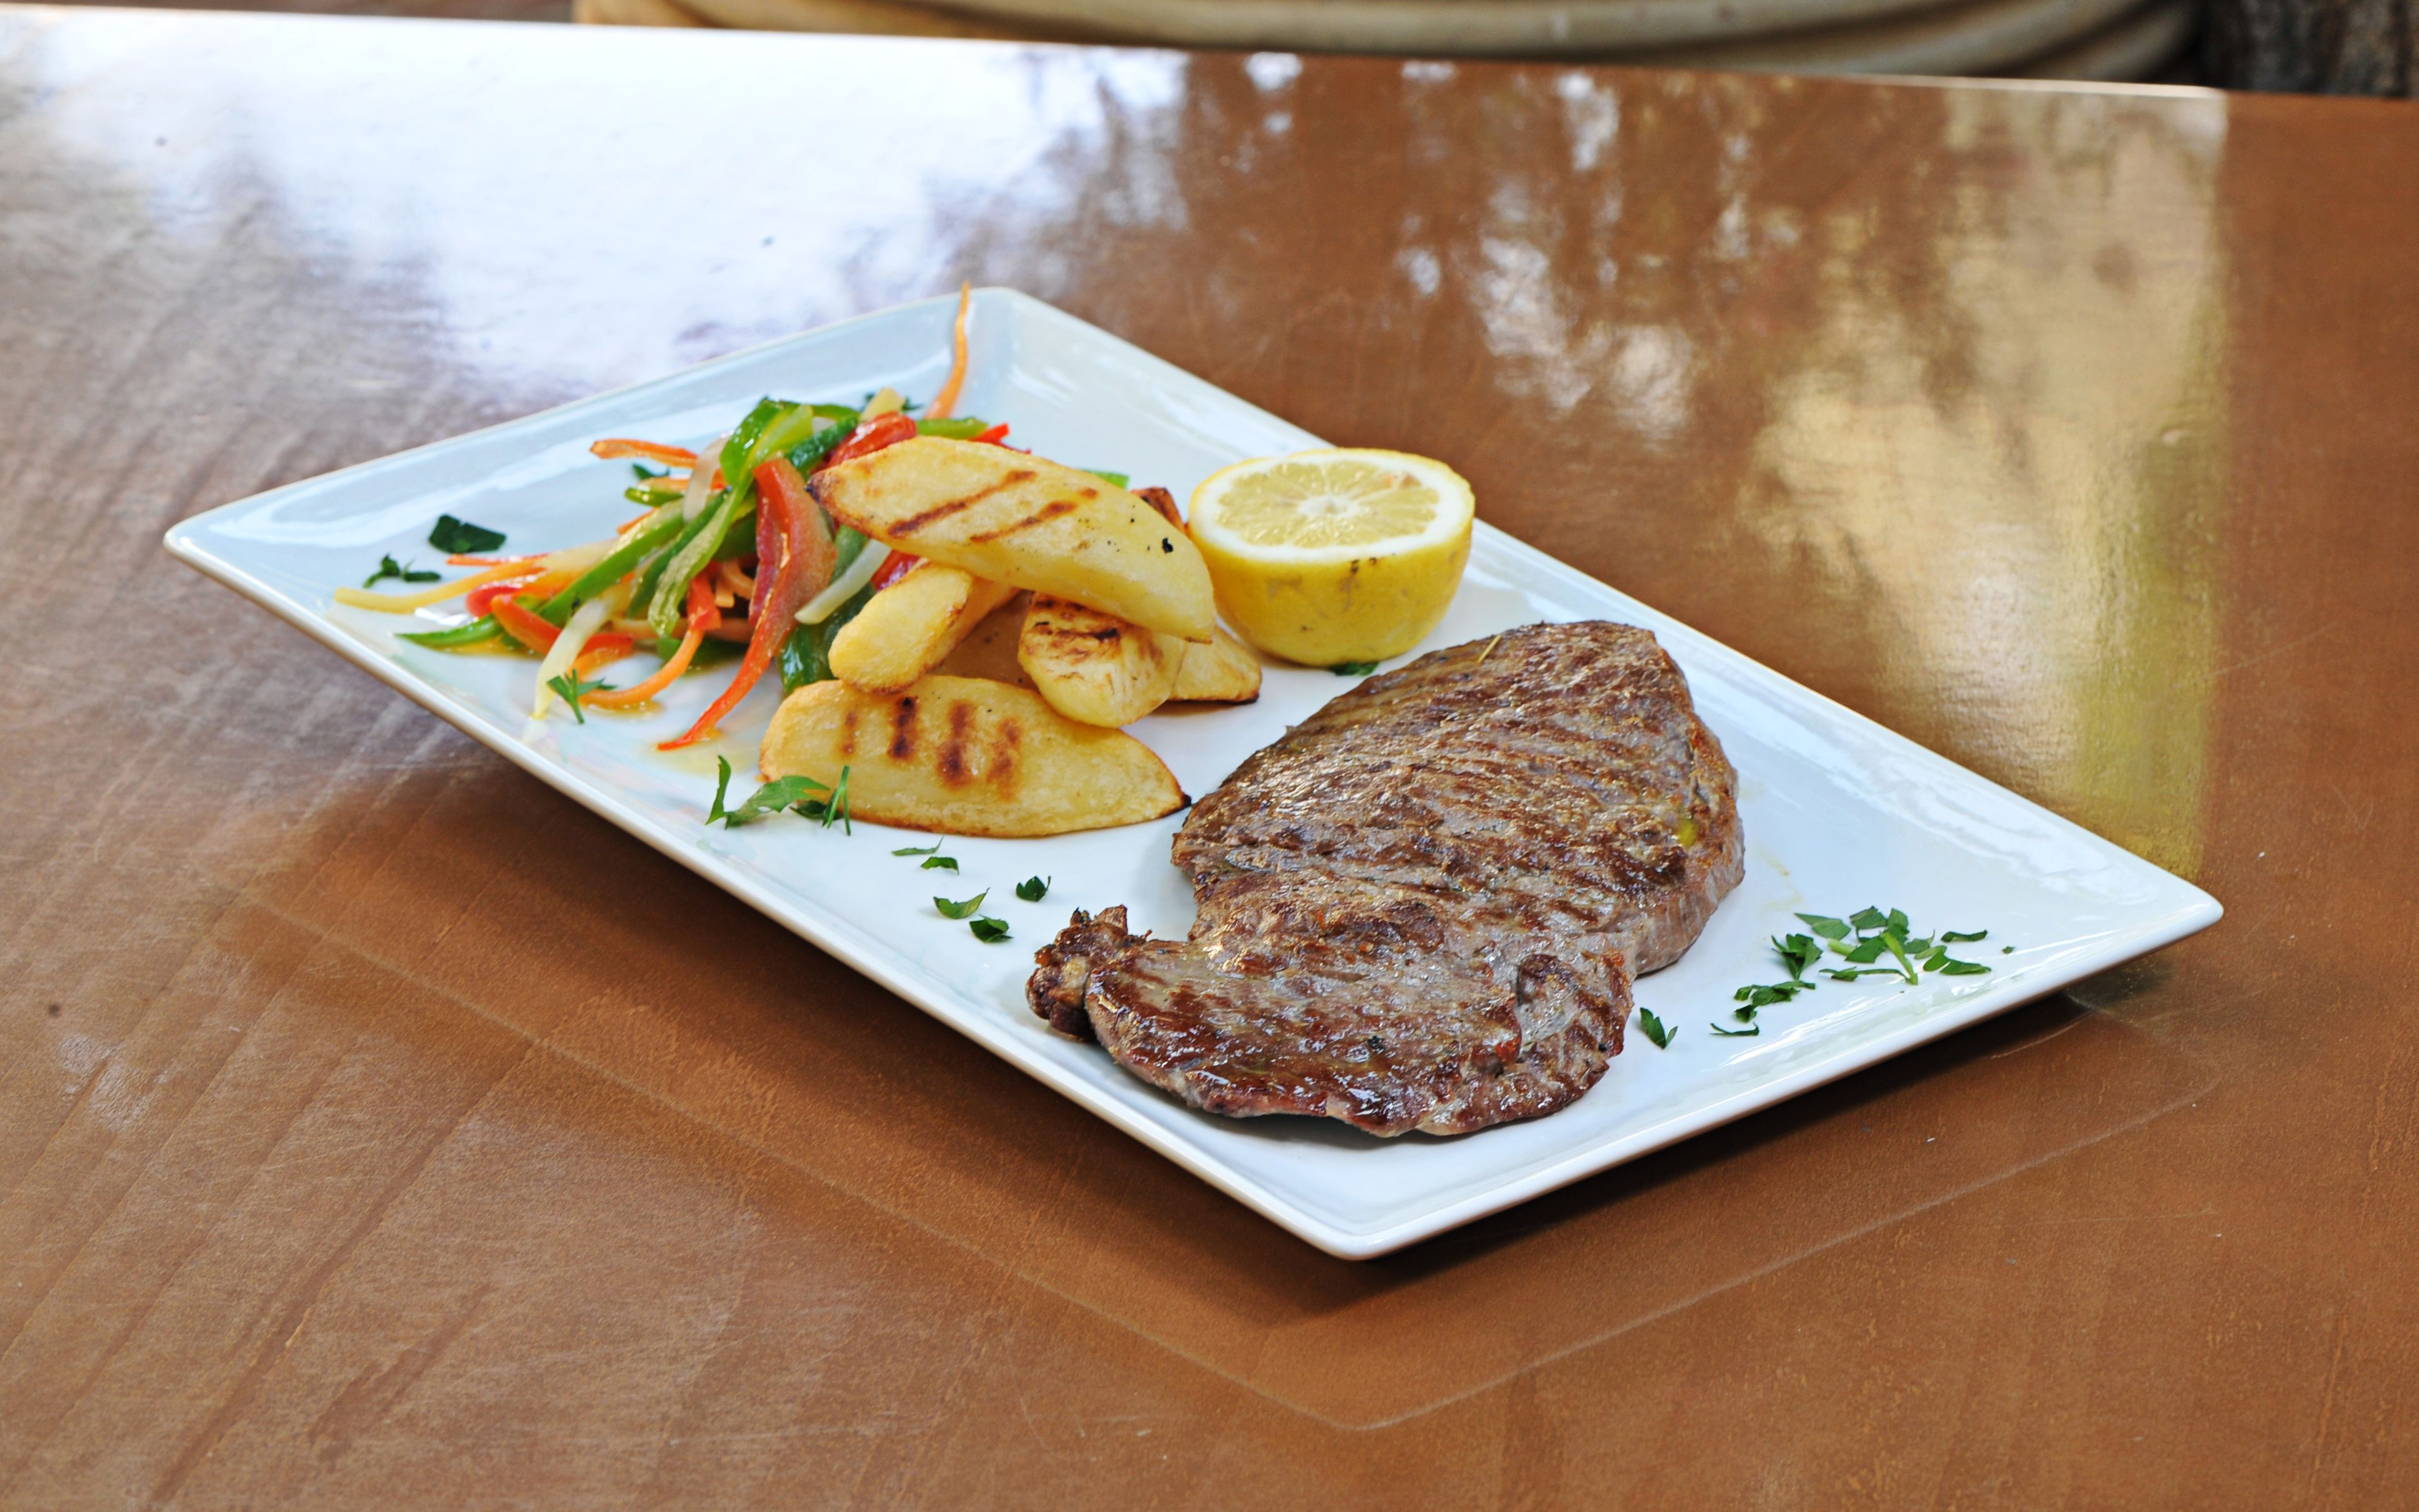 rib-eye steak marinated in #olive oil with grilled #potatoes, vegetables and sour milk foam #alanamenu